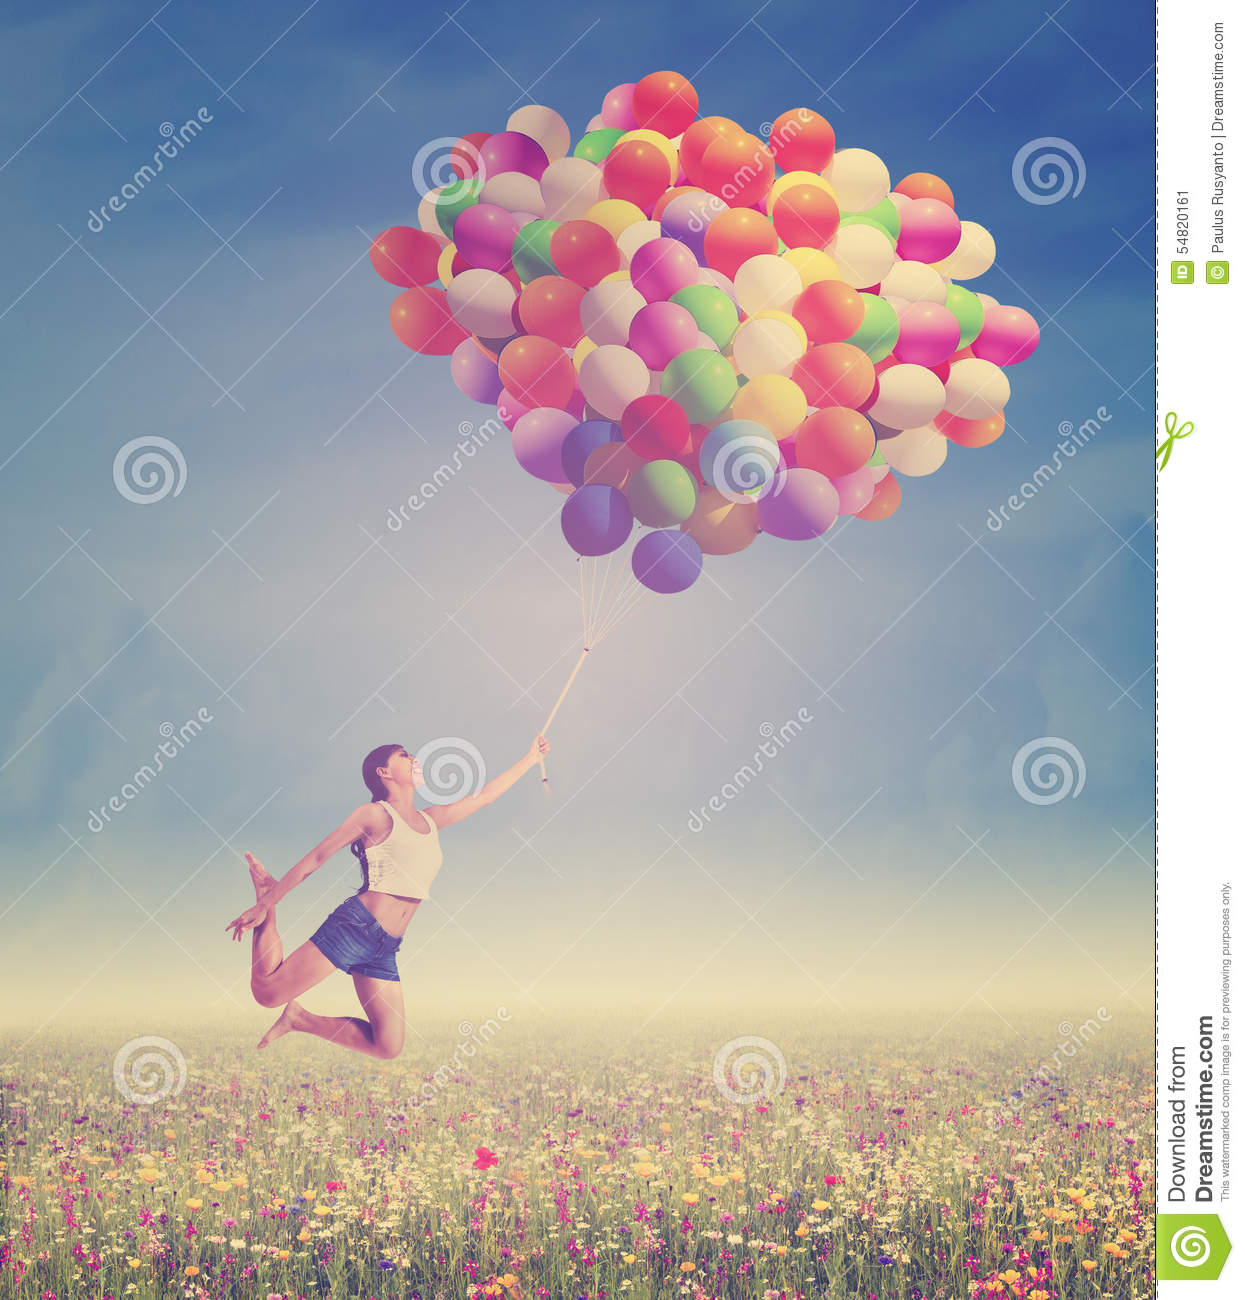 Woman flying with balloons in nature stock photo image for Cheerful nature